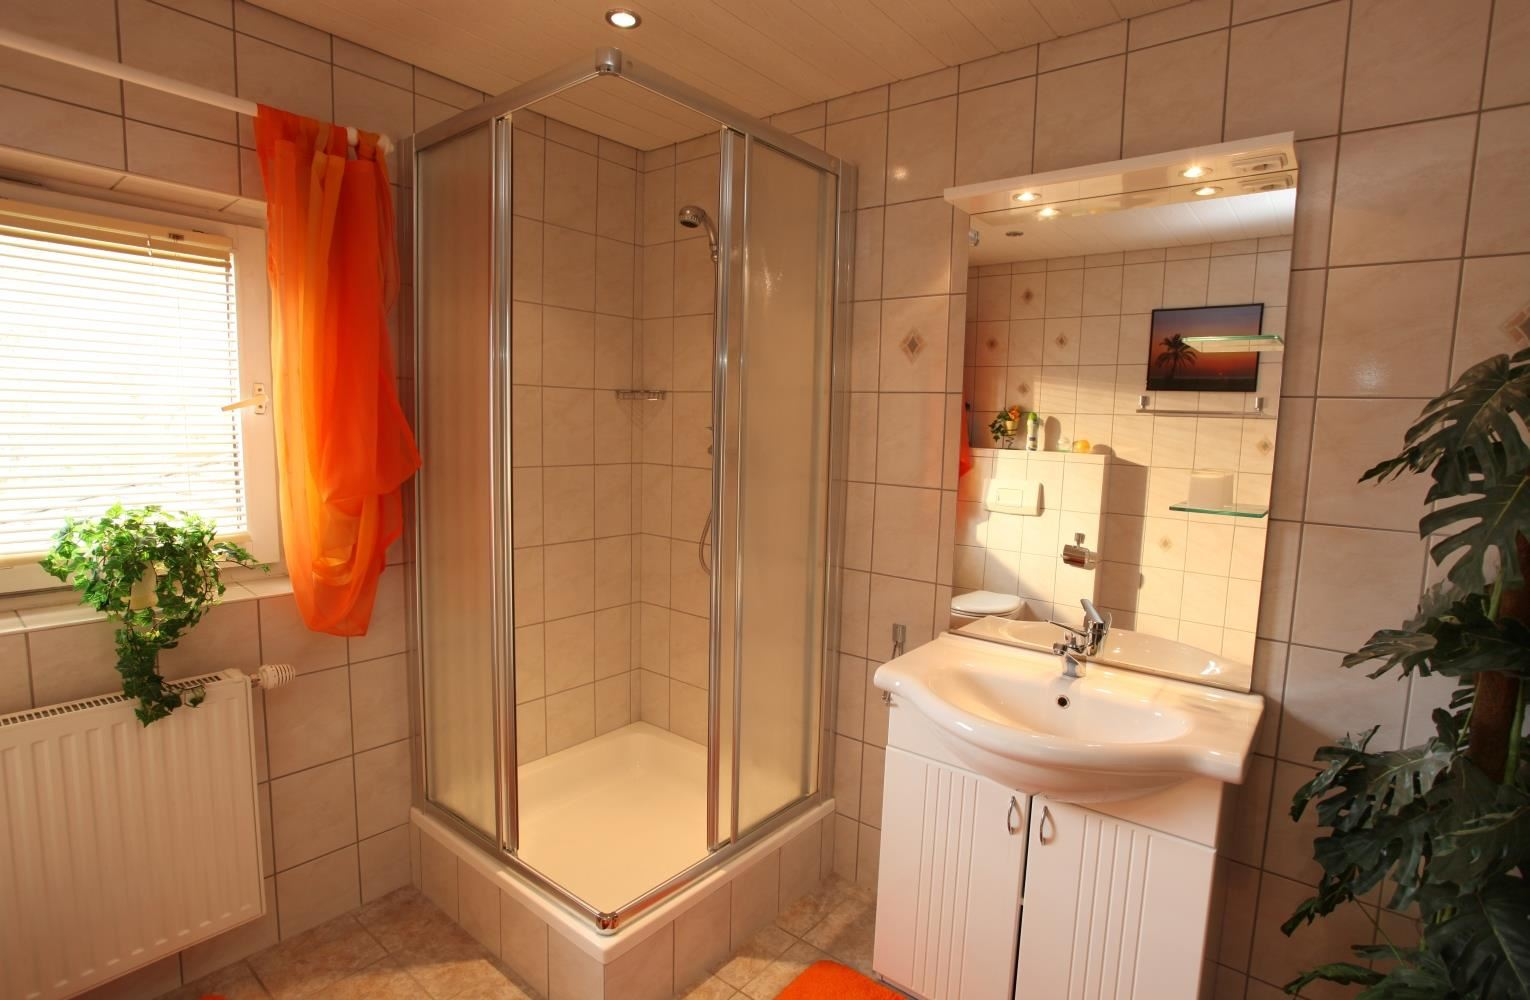 Badezimmer In Orange Twin With Running Hot Cold Water